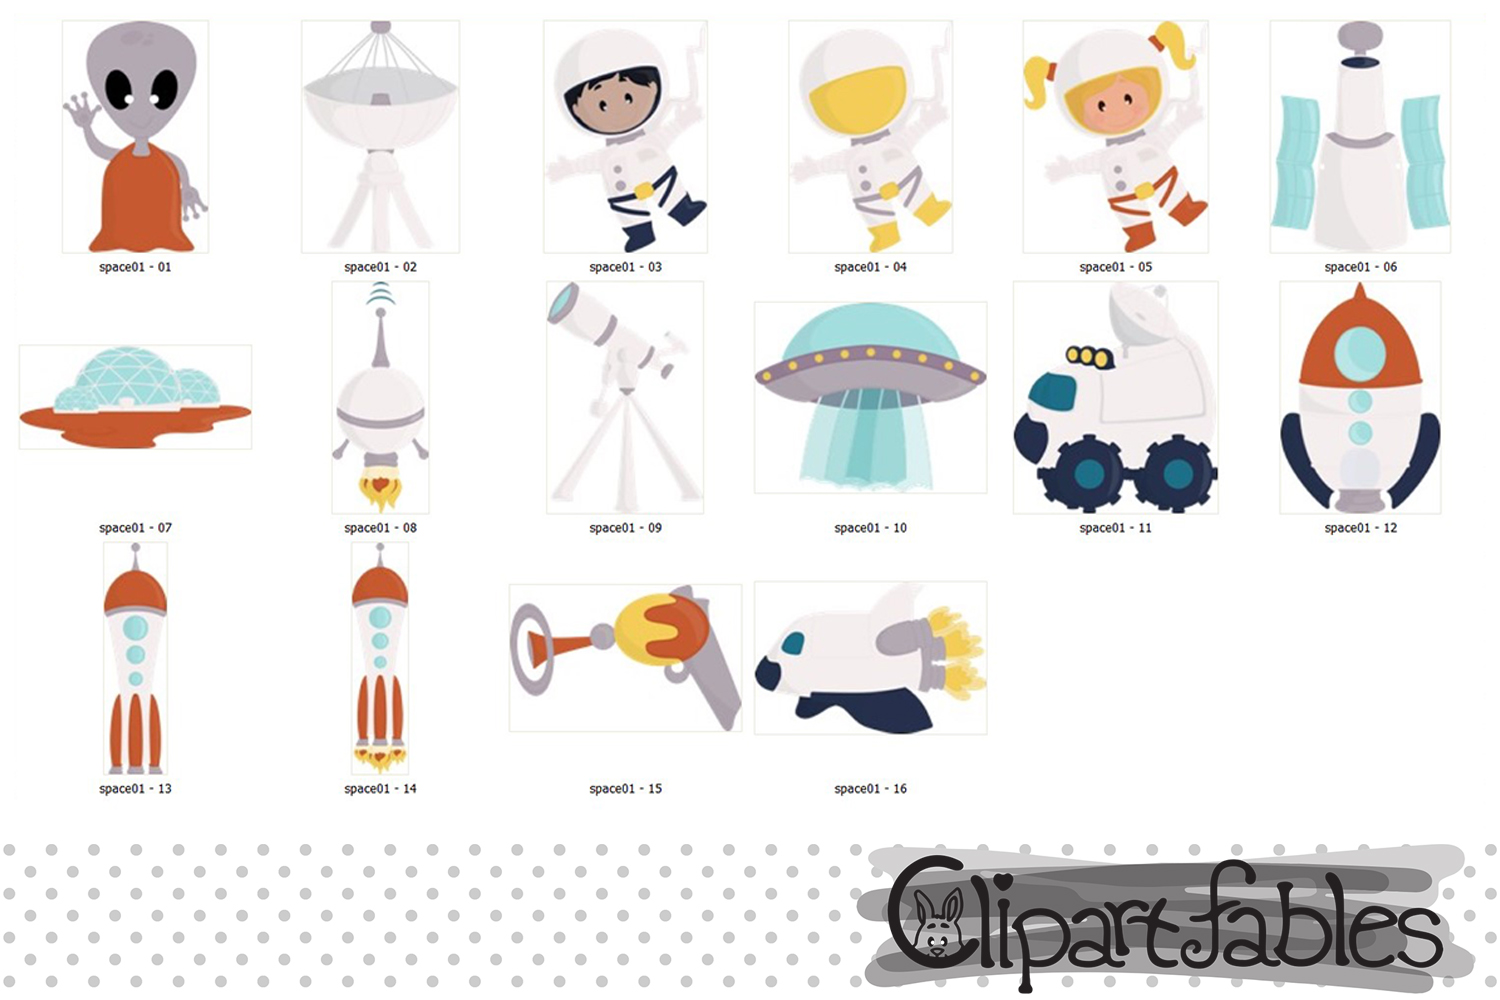 Solar system clipart, Planet clip art, Cute Space design example image 3